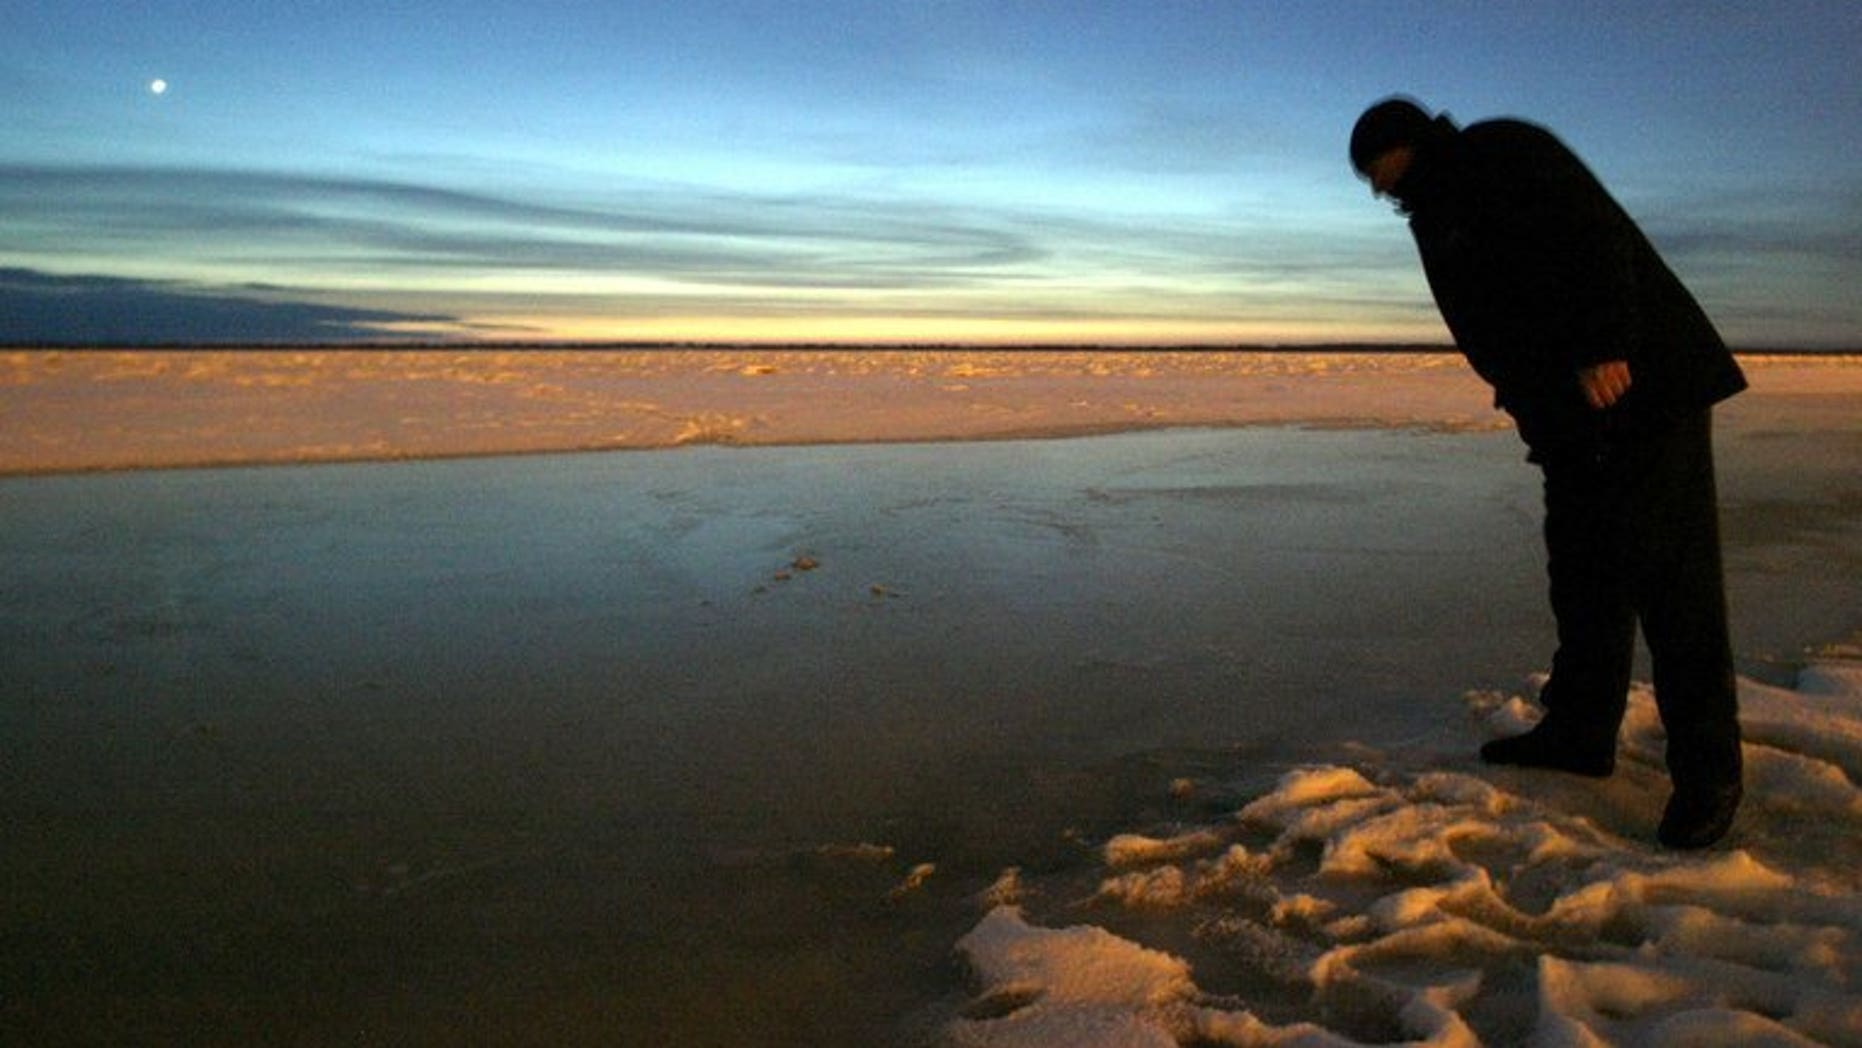 File picture shows a local resident looking into the Amur river in Khabarovsk, eastern Russia, December 24, 2005. Floods on the Amur River in Russia's Far East broke historic records Monday as authorities evacuated over 19,000 people from affected areas and warned of a further rise in water levels.